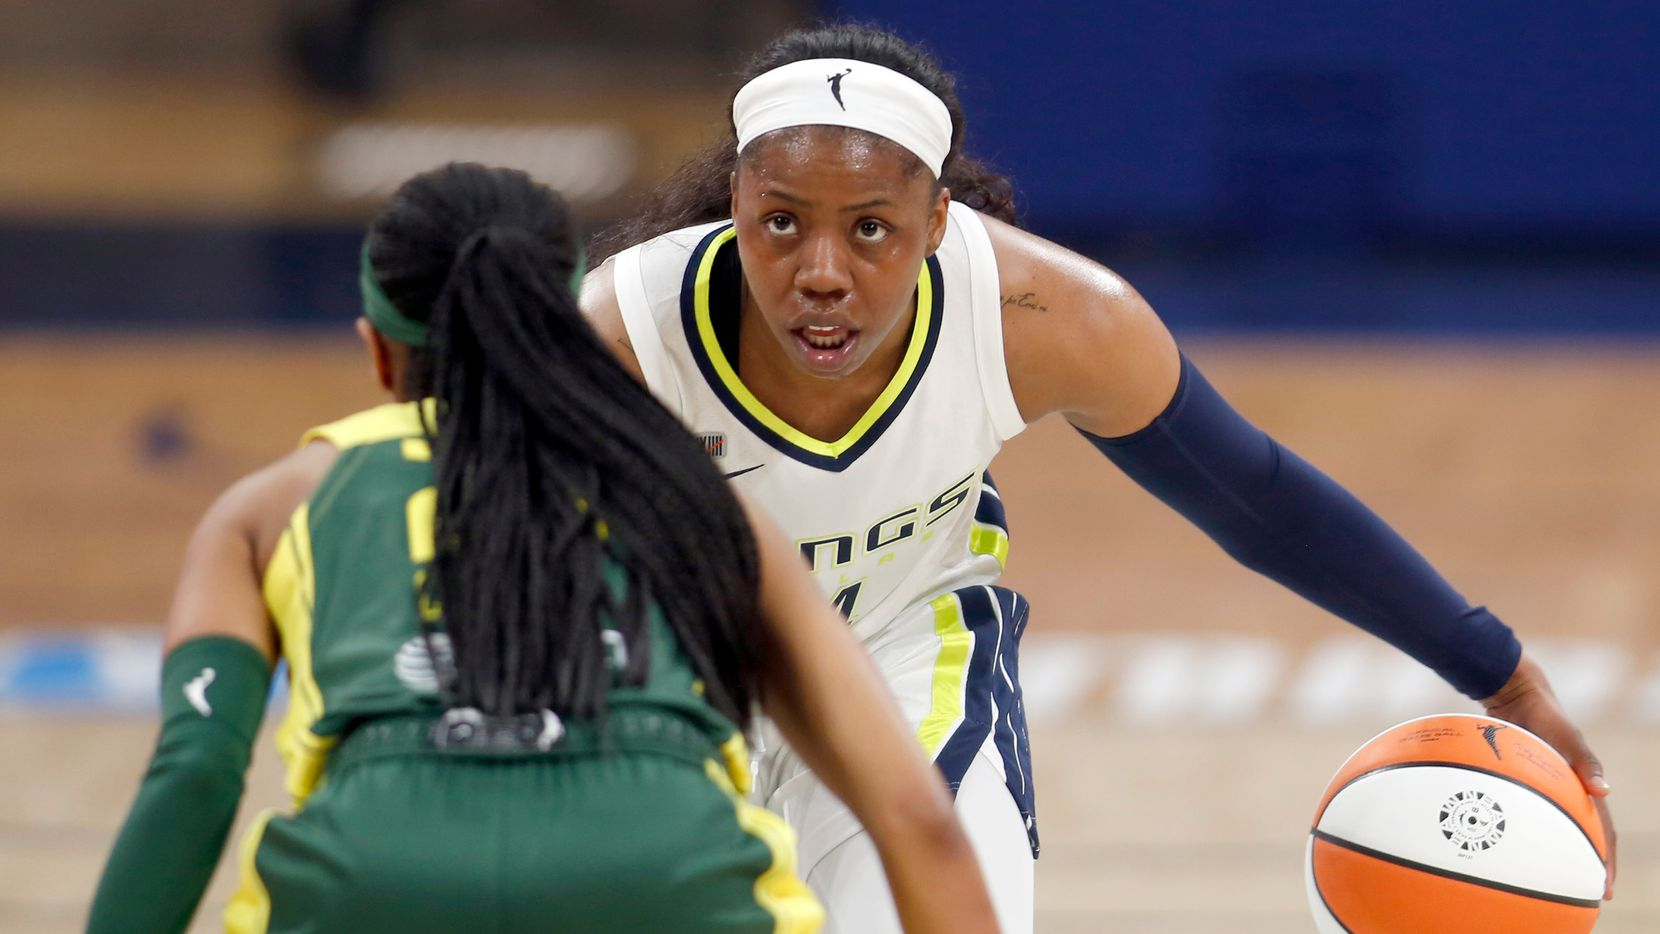 Dallas Wings guard Arike Ogunbowale (24) brings the ball to mid-court as she is defended by Seattle guard Jordin Canada (21) during first half action. The Wings hosted the Storm for their WNBA 2021season home opener at UTA's College Park Center in Arlington on May 22, 2021. (Steve Hamm/ Special Contributor)